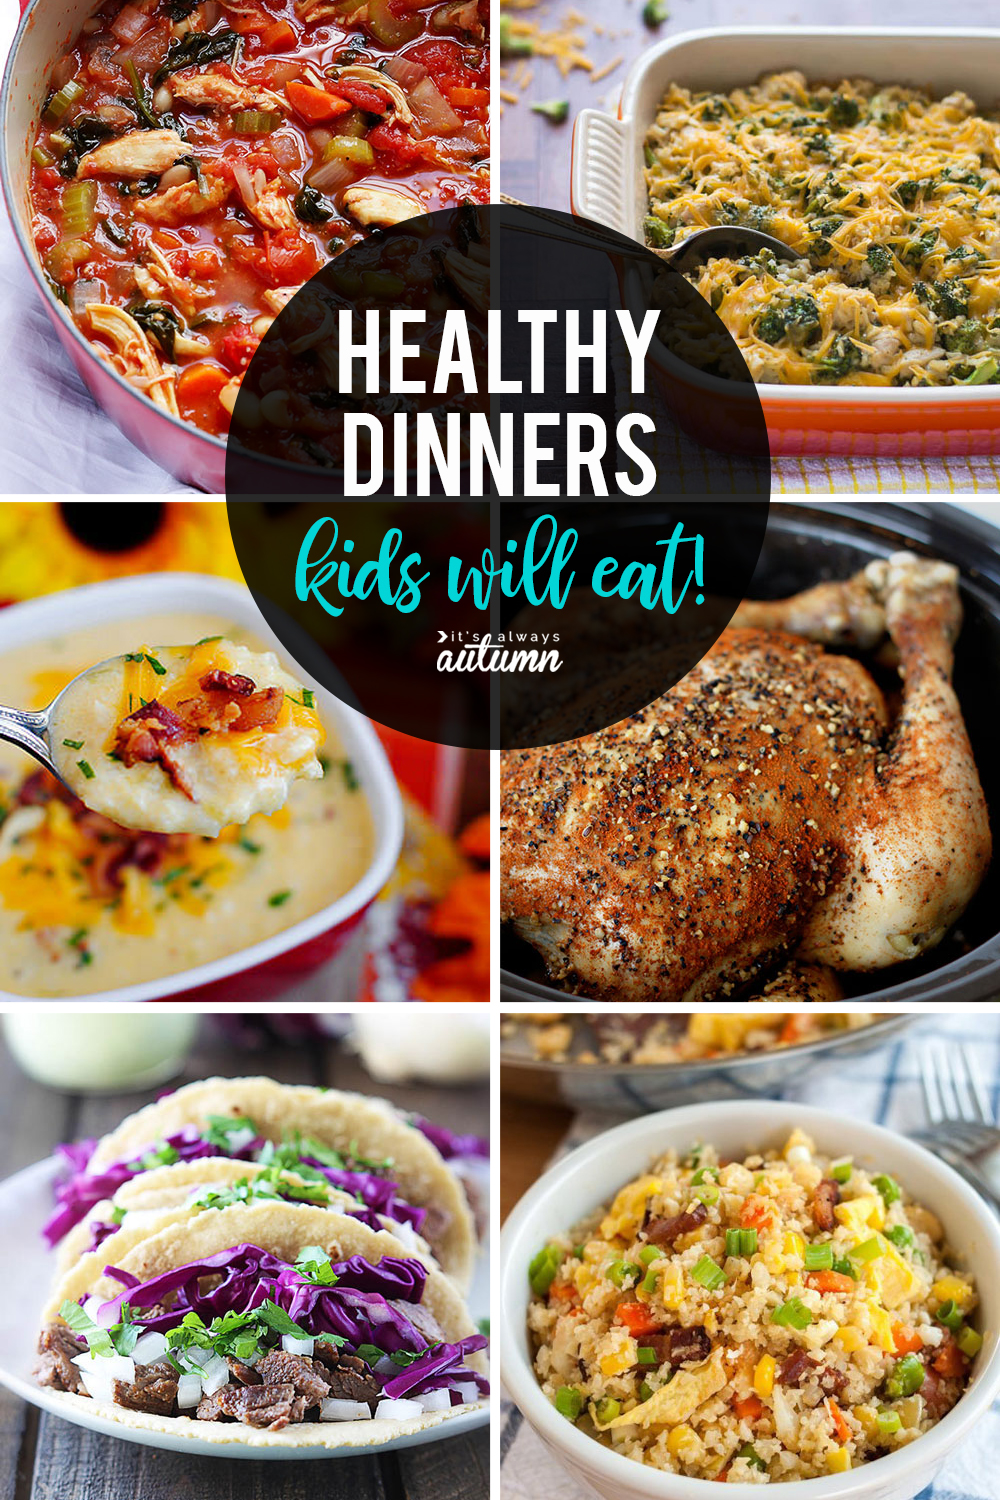 Have picky eaters? Click through for 20 healthy recipes that kids will love. Healthy dinner ideas for families.